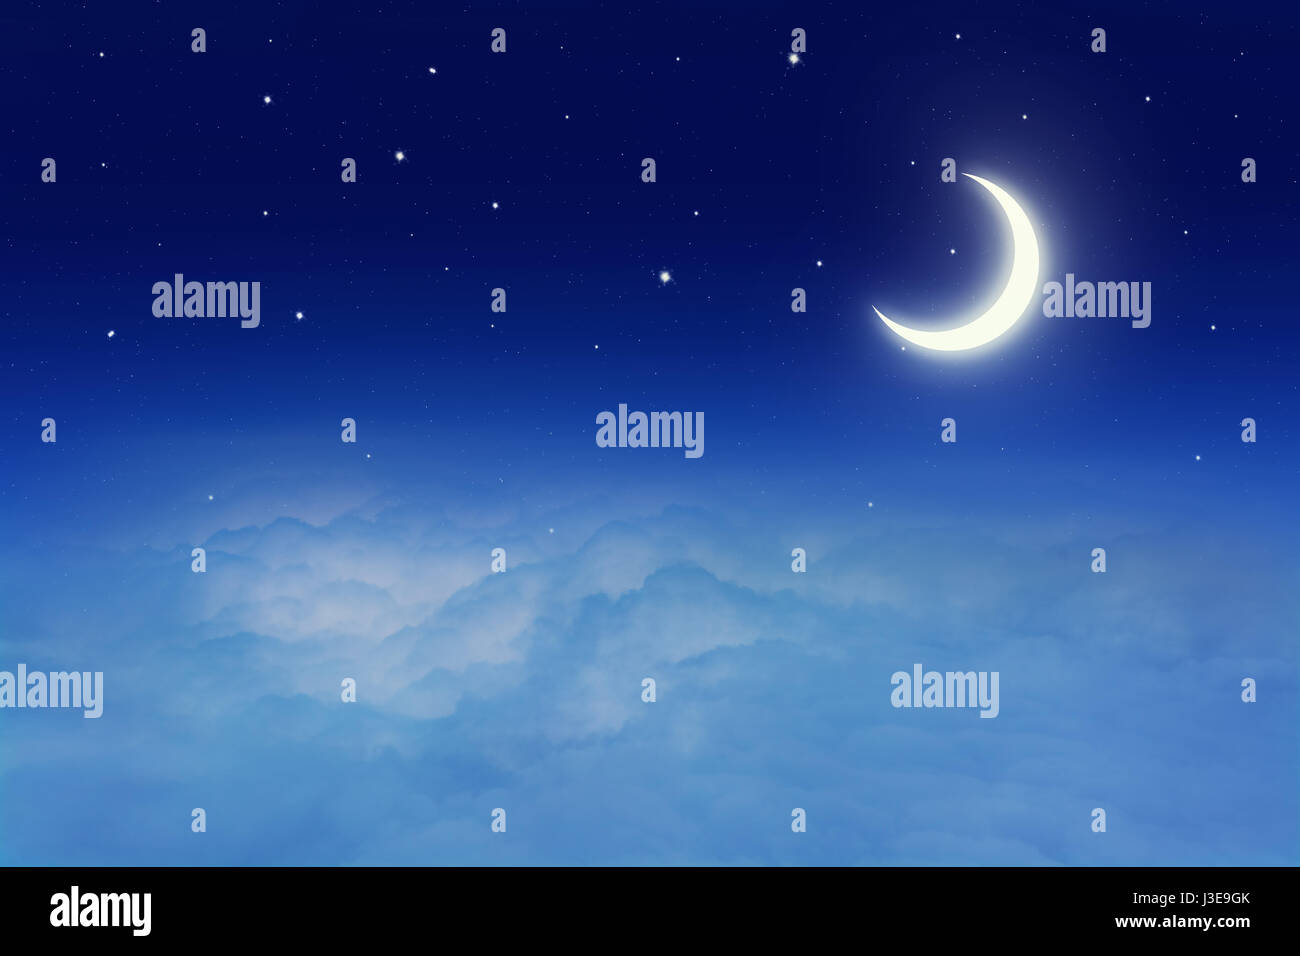 Night sky with stars and moon - Stock Image